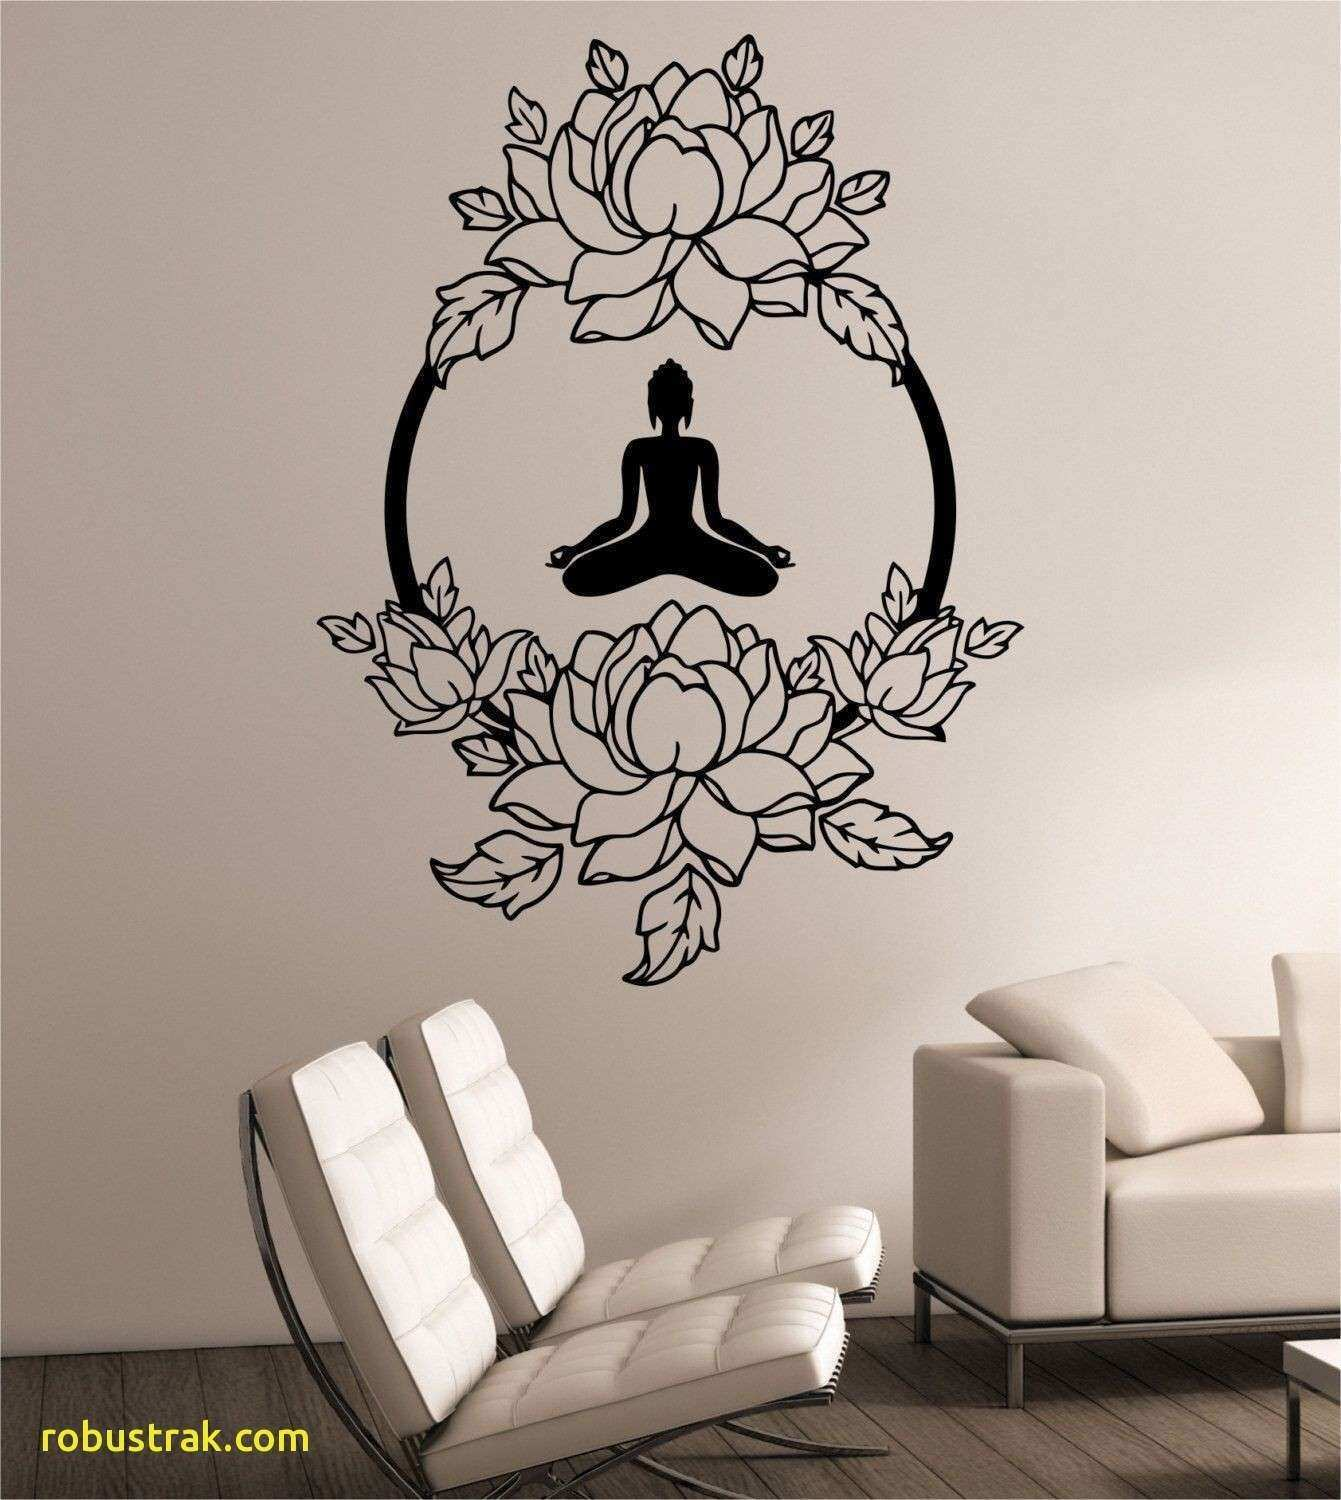 Luxury Wall Decals for Baby Boy Room